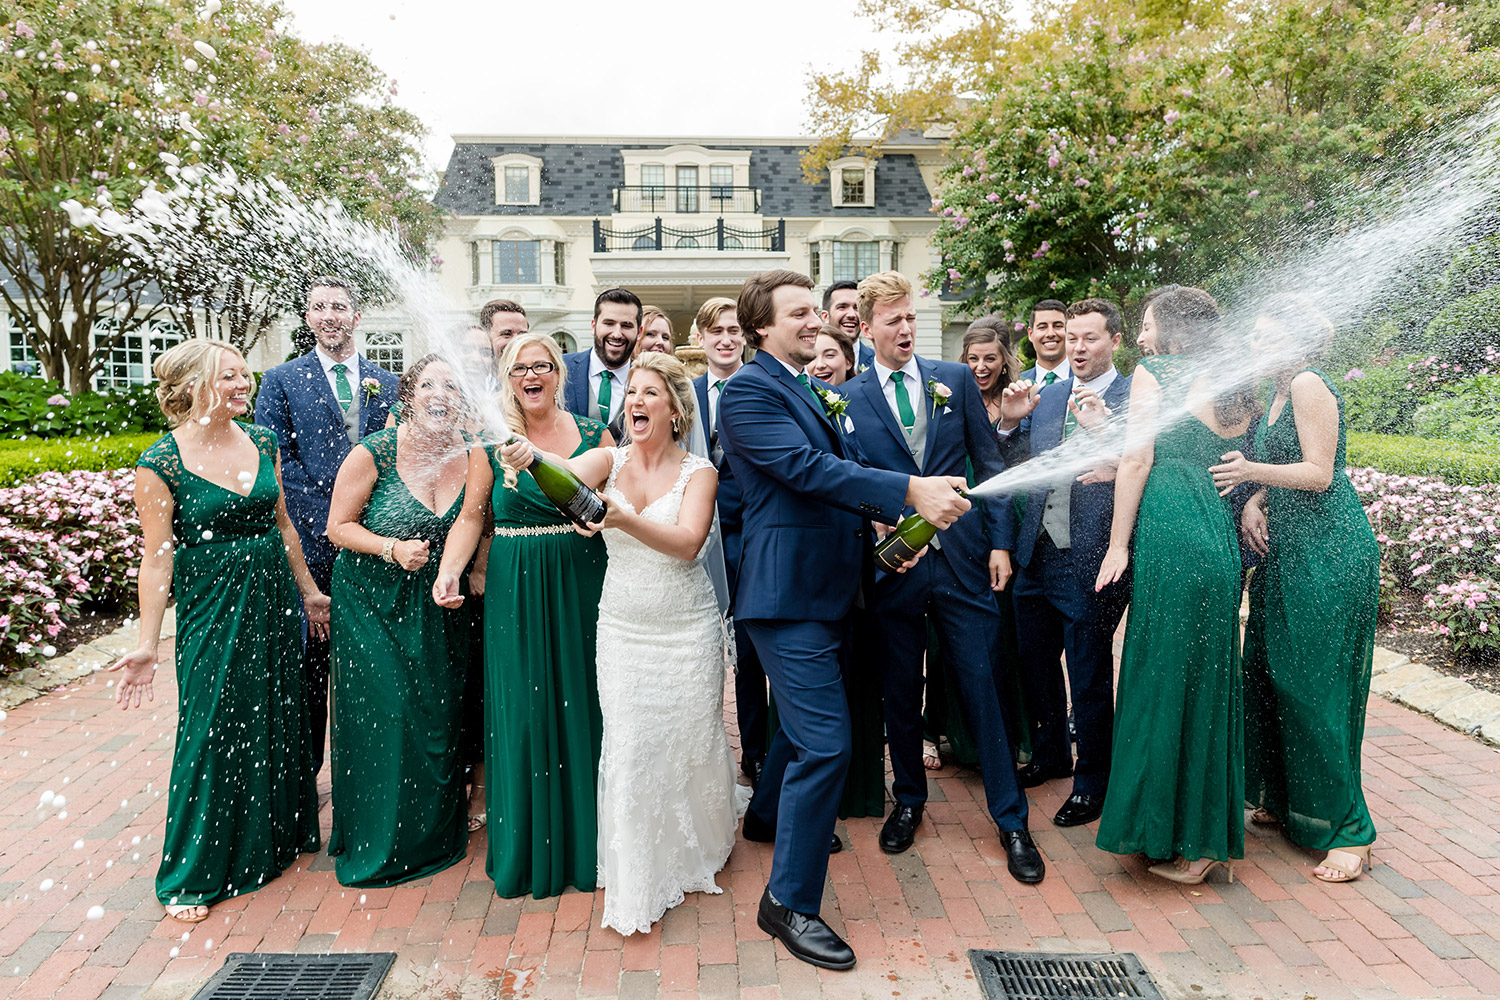 Canon Explorers of Light  – Q&A with Photographer Vanessa Joy. A wedding party celebrates with champagne.